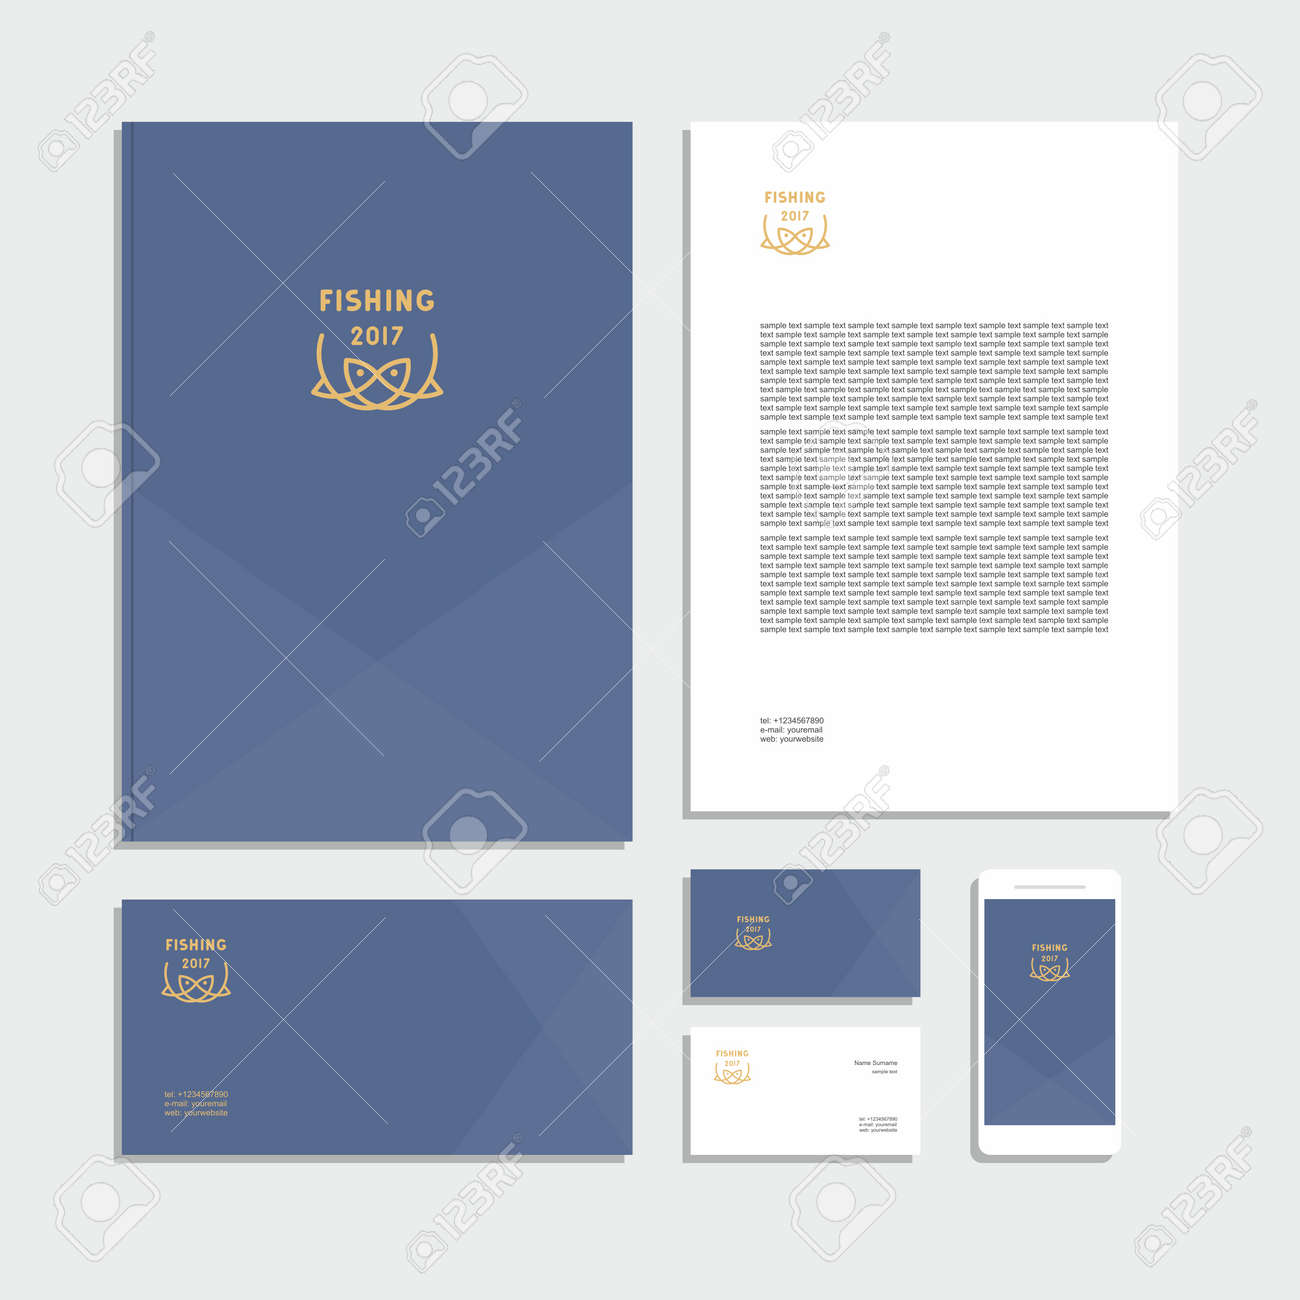 Abstract corporate identity with sign. Stationery set. Creative design. - 168167561